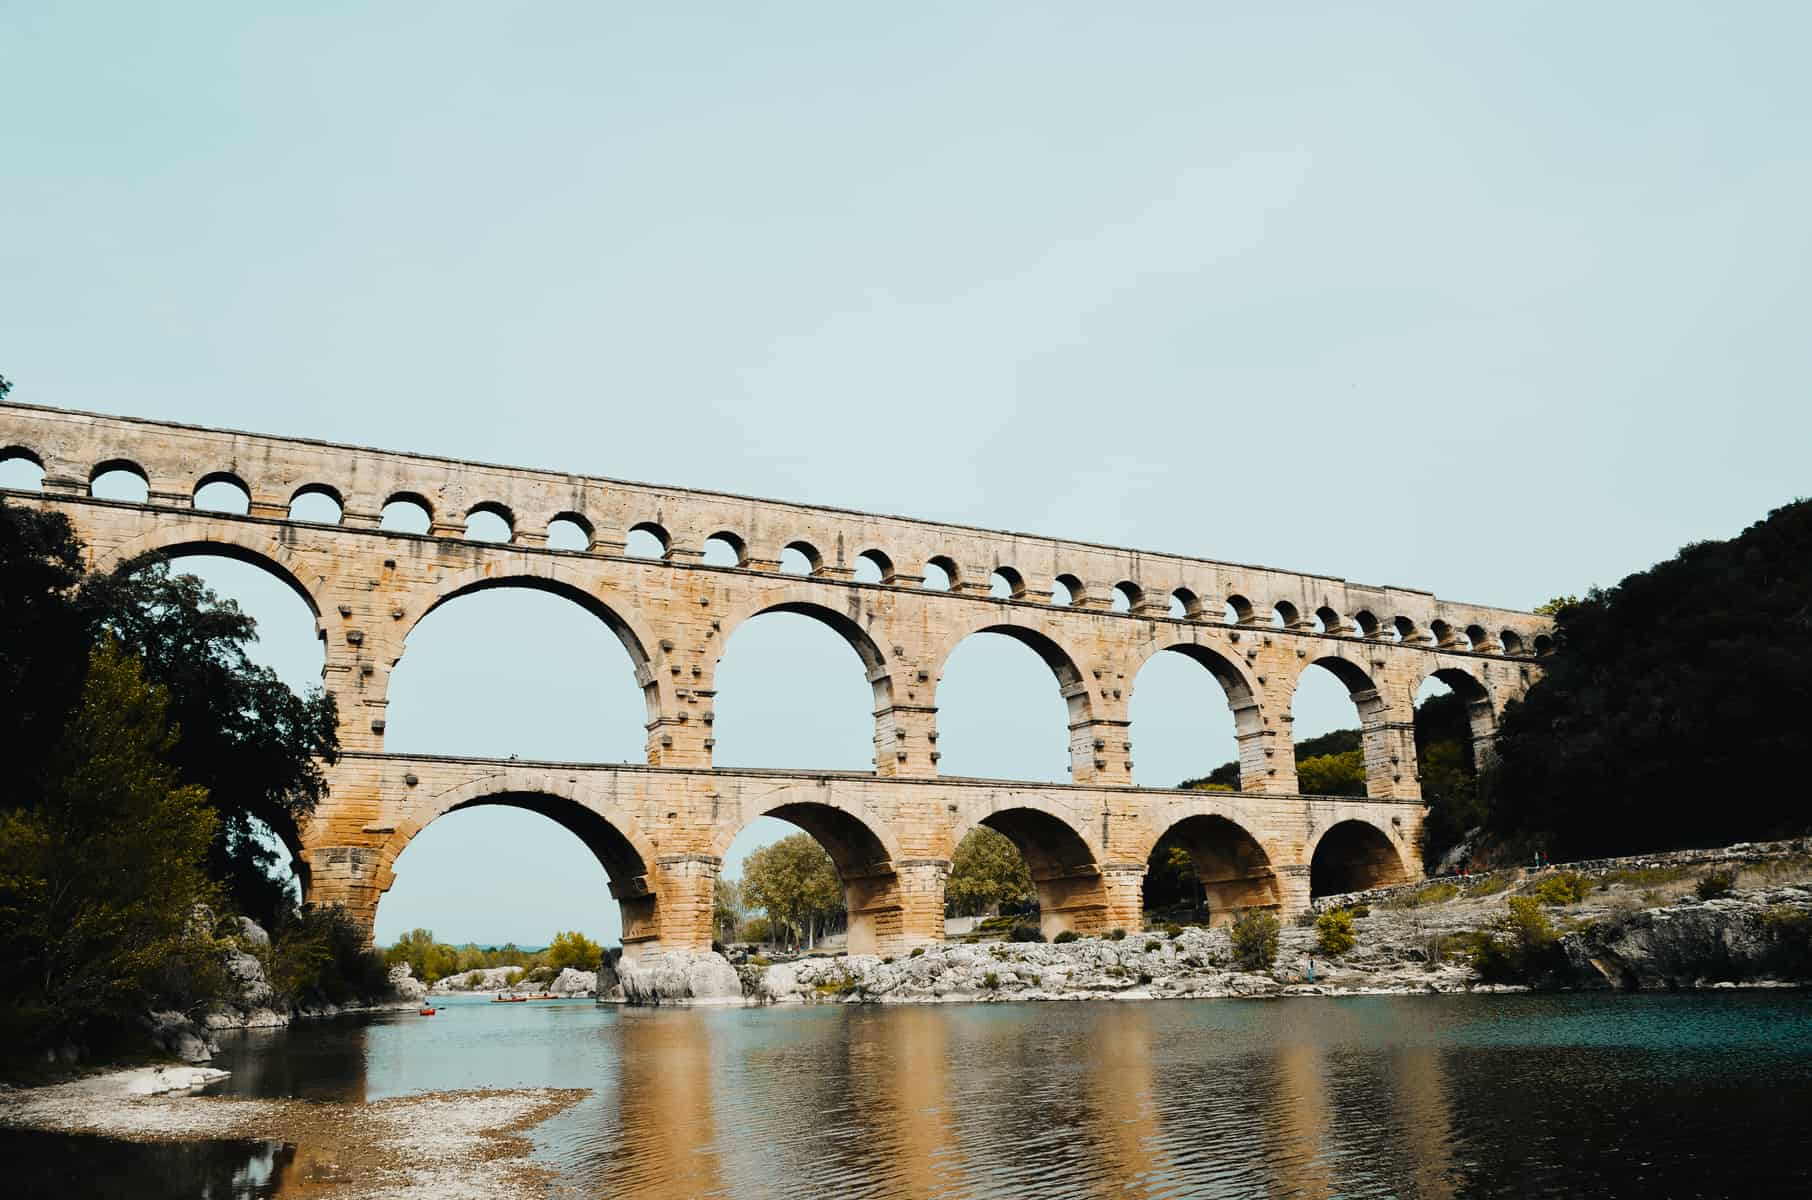 FAMILY TRIP TO THE PONT DU GARD IN NIMES